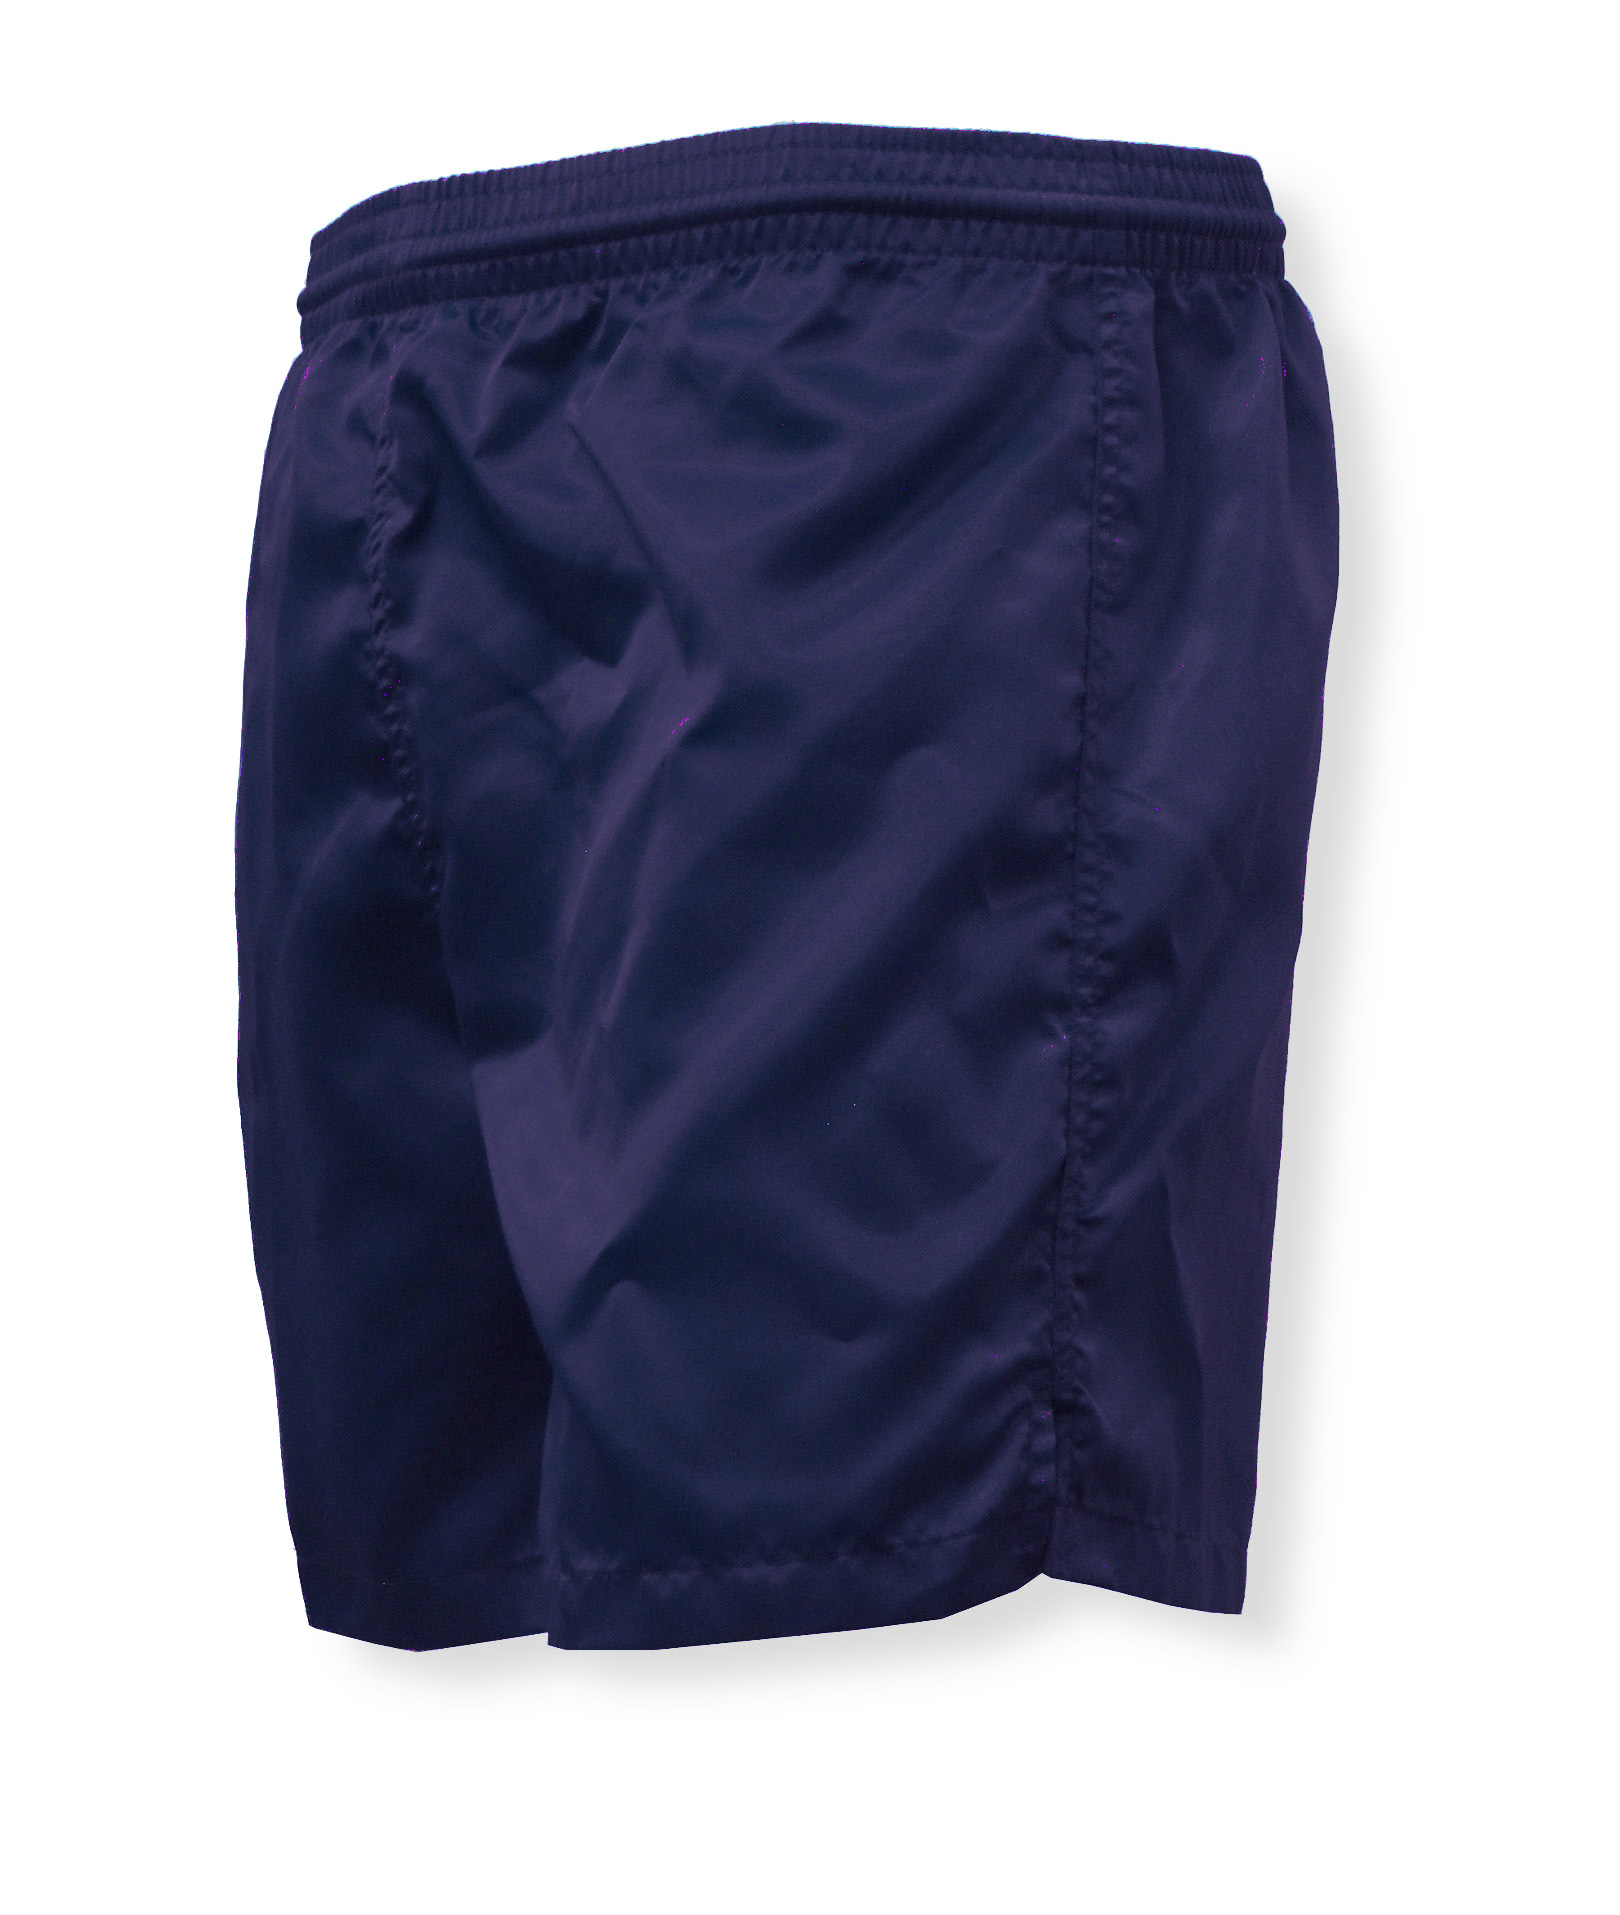 Olympic nylon satin shorts in navy by Code Four Athletics